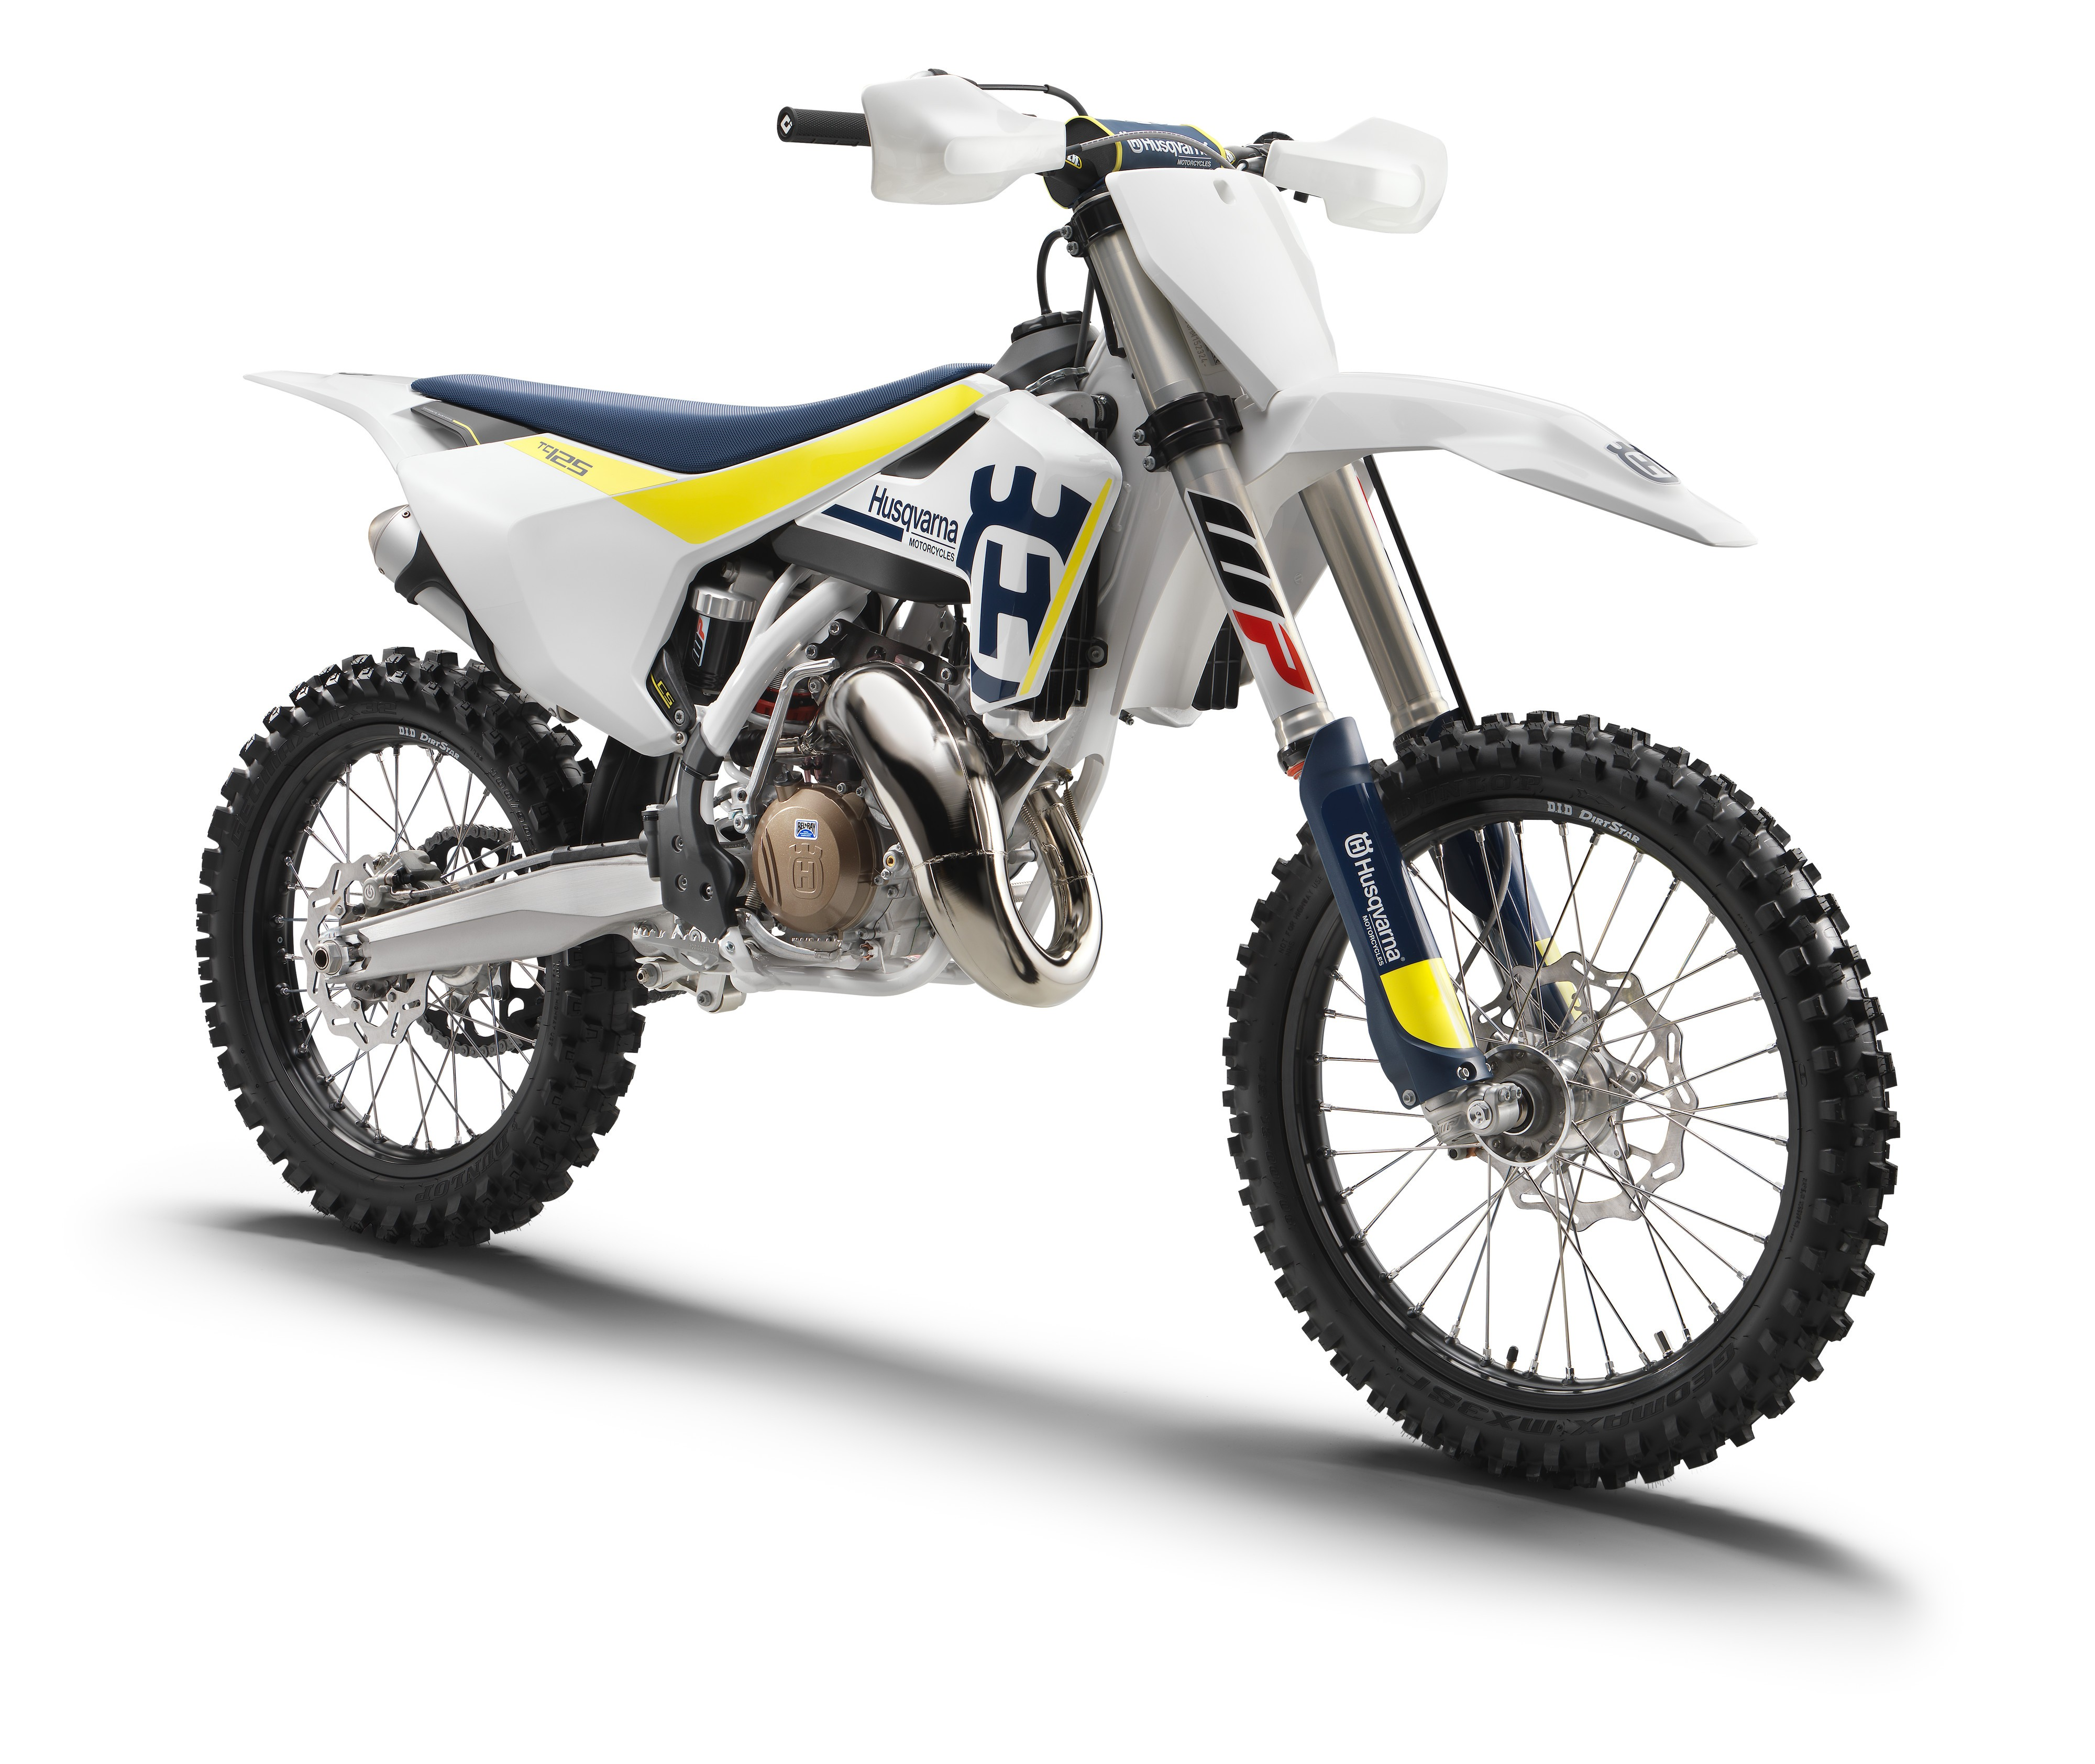 traction control arrives in husqvarna 39 s 2017 motocross bikes autoevolution. Black Bedroom Furniture Sets. Home Design Ideas